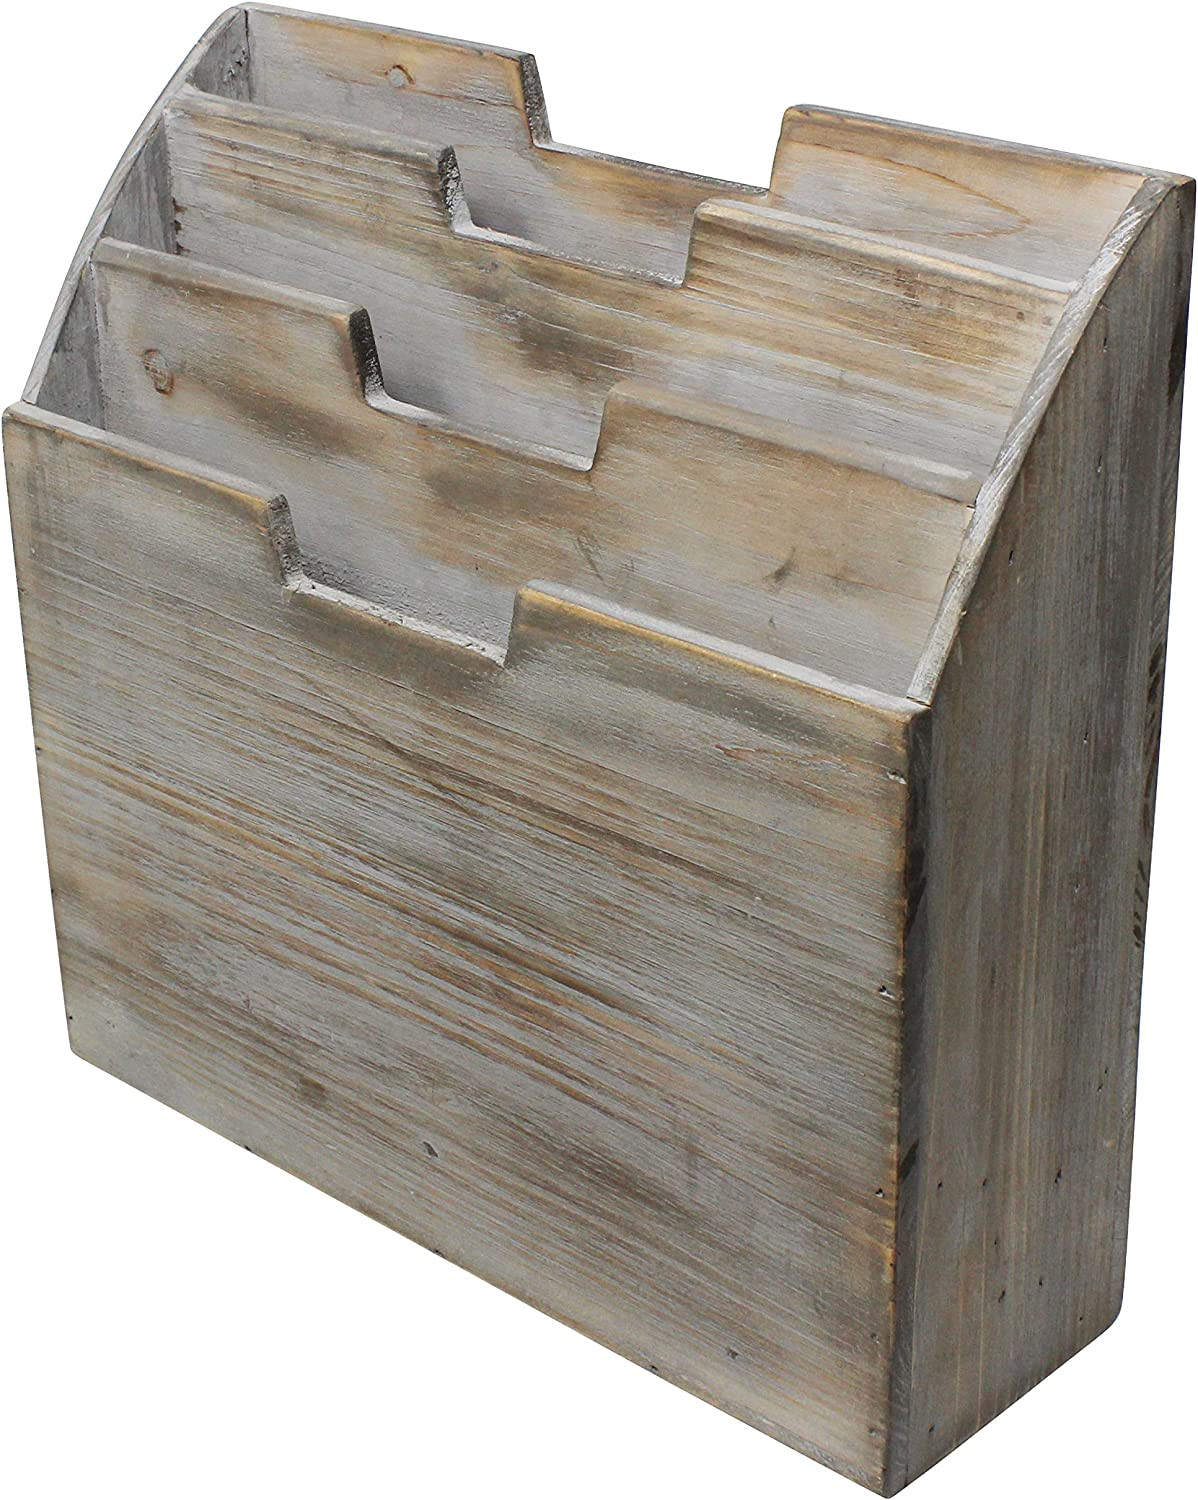 Vintage Rustic Wooden Office Desk Organizer & Vertical Paper File Holder For Desktop, Tabletop, or Counter - Distressed Torched Wood – For Mail, Envelopes, Mailing Supplies, Magazines, or File Folders